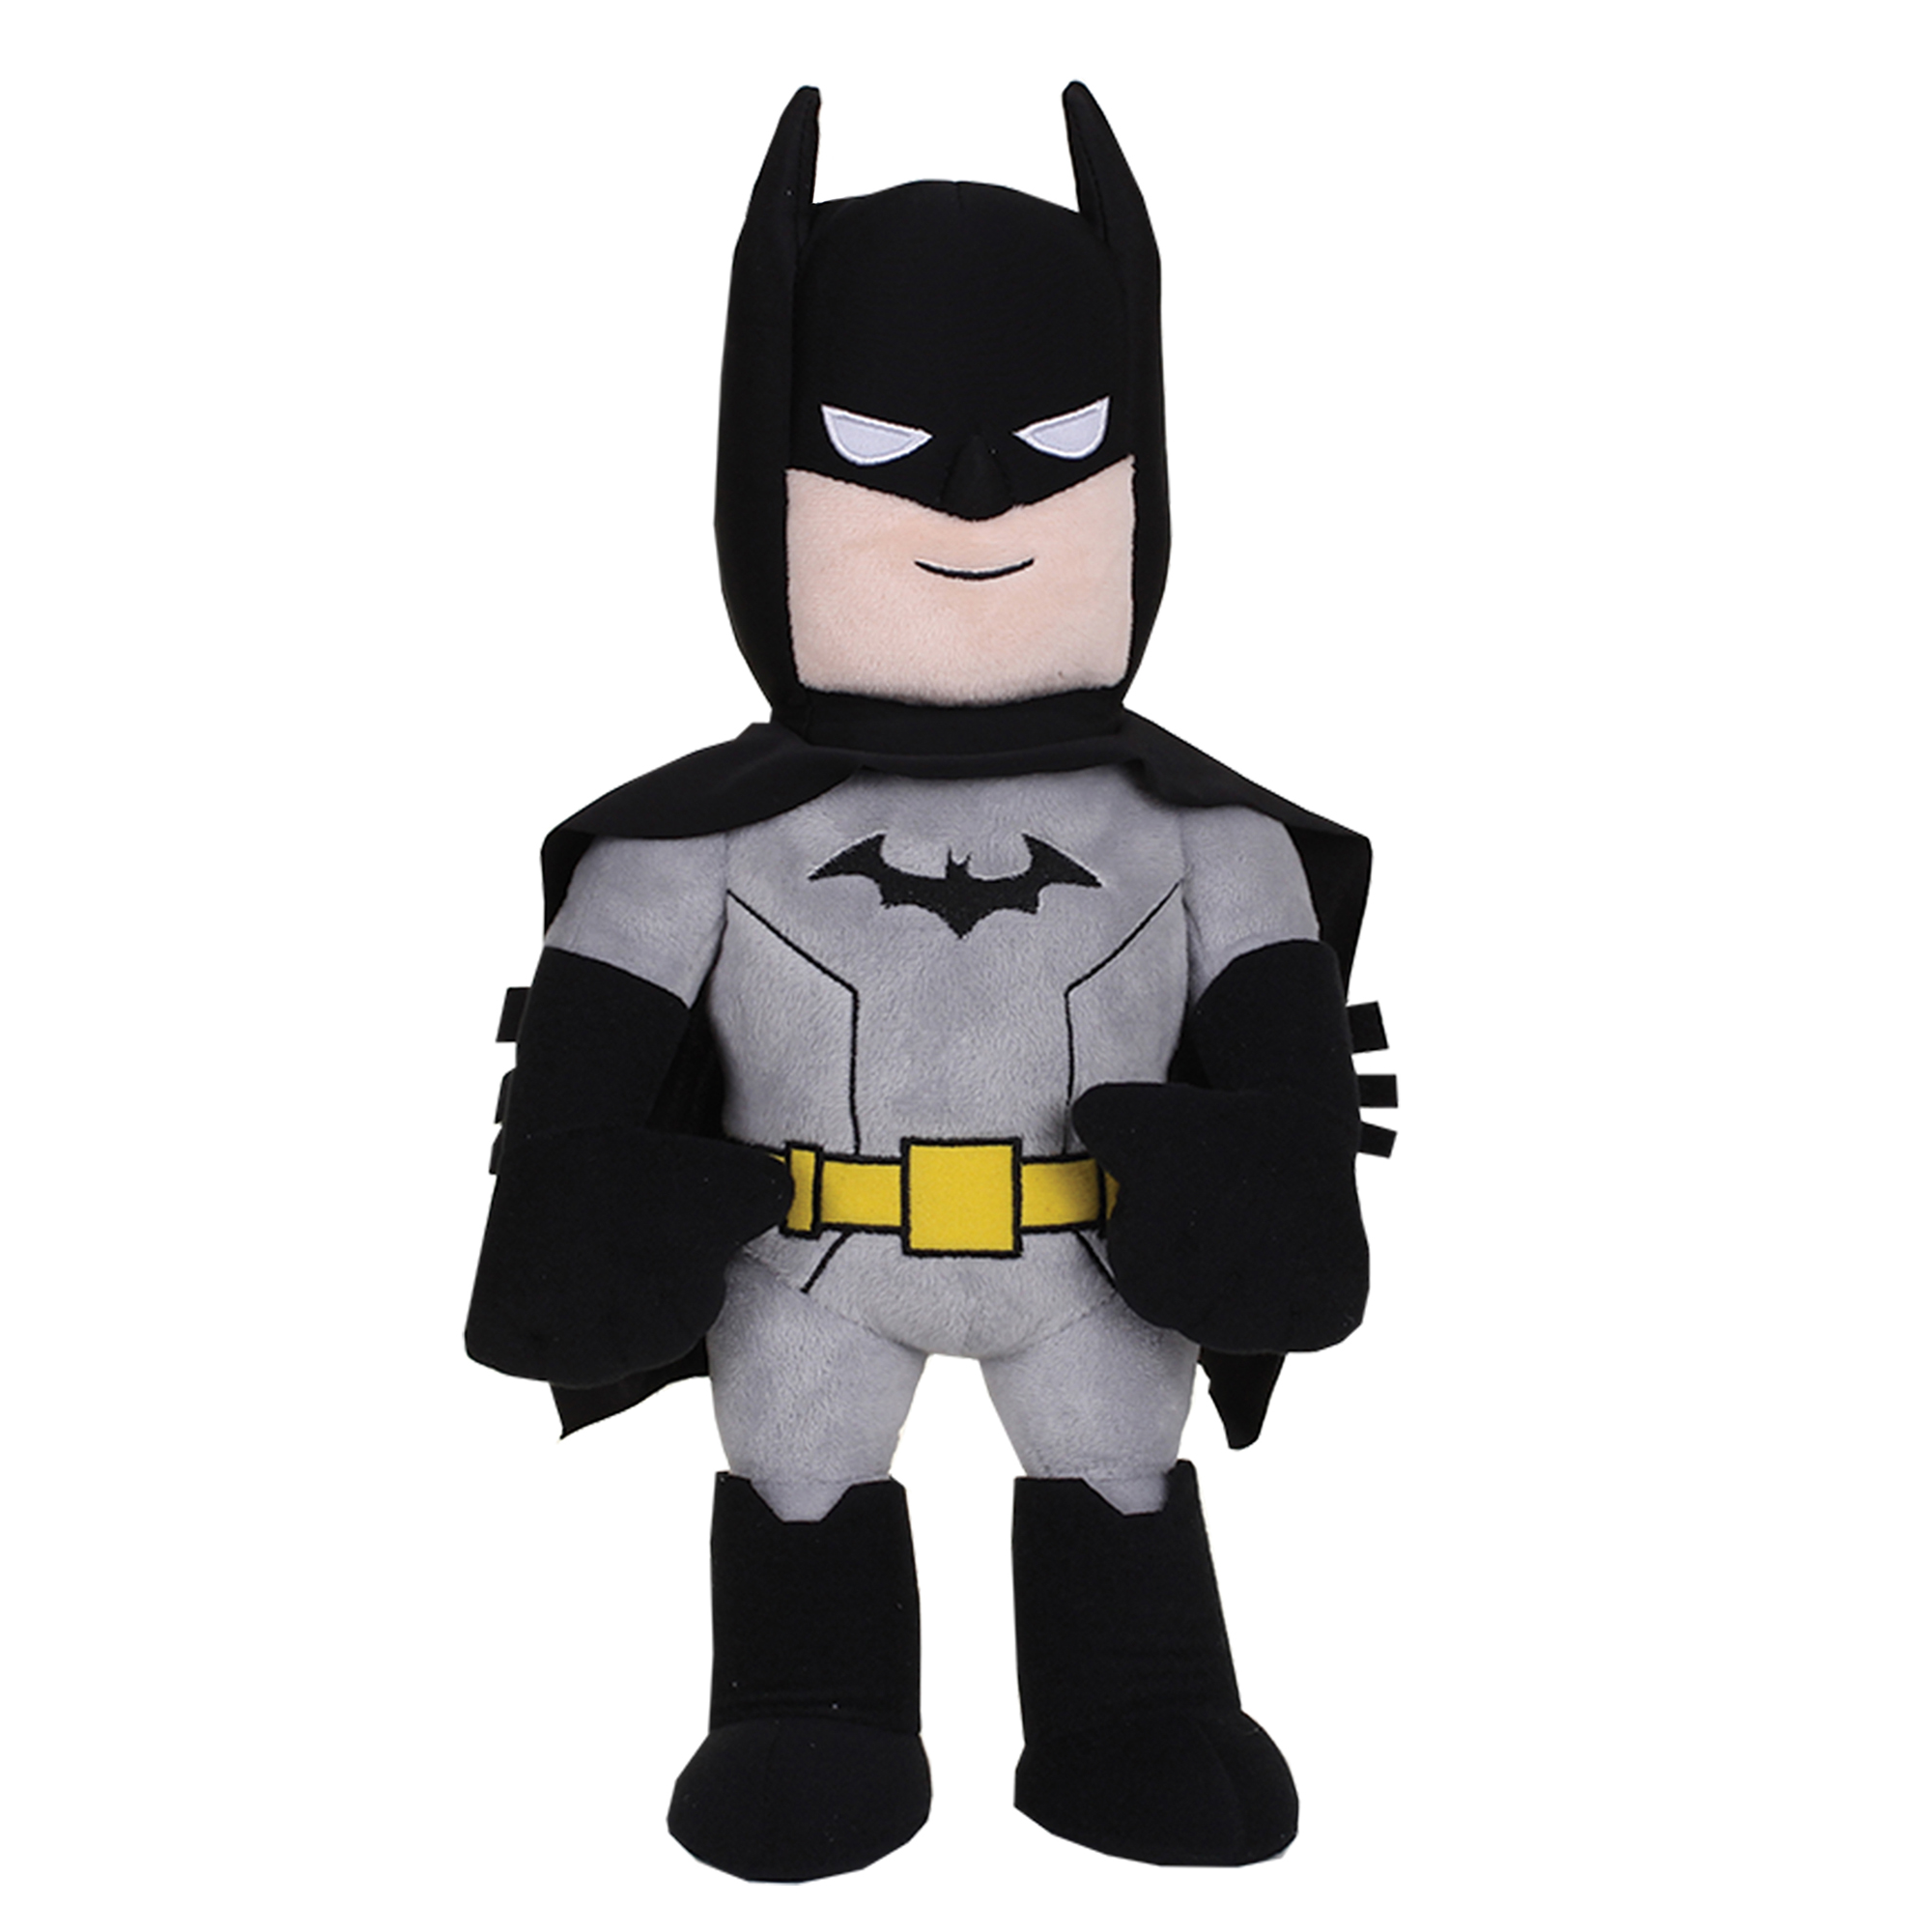 DC Super Friends Power Punch Batman Soft Toy